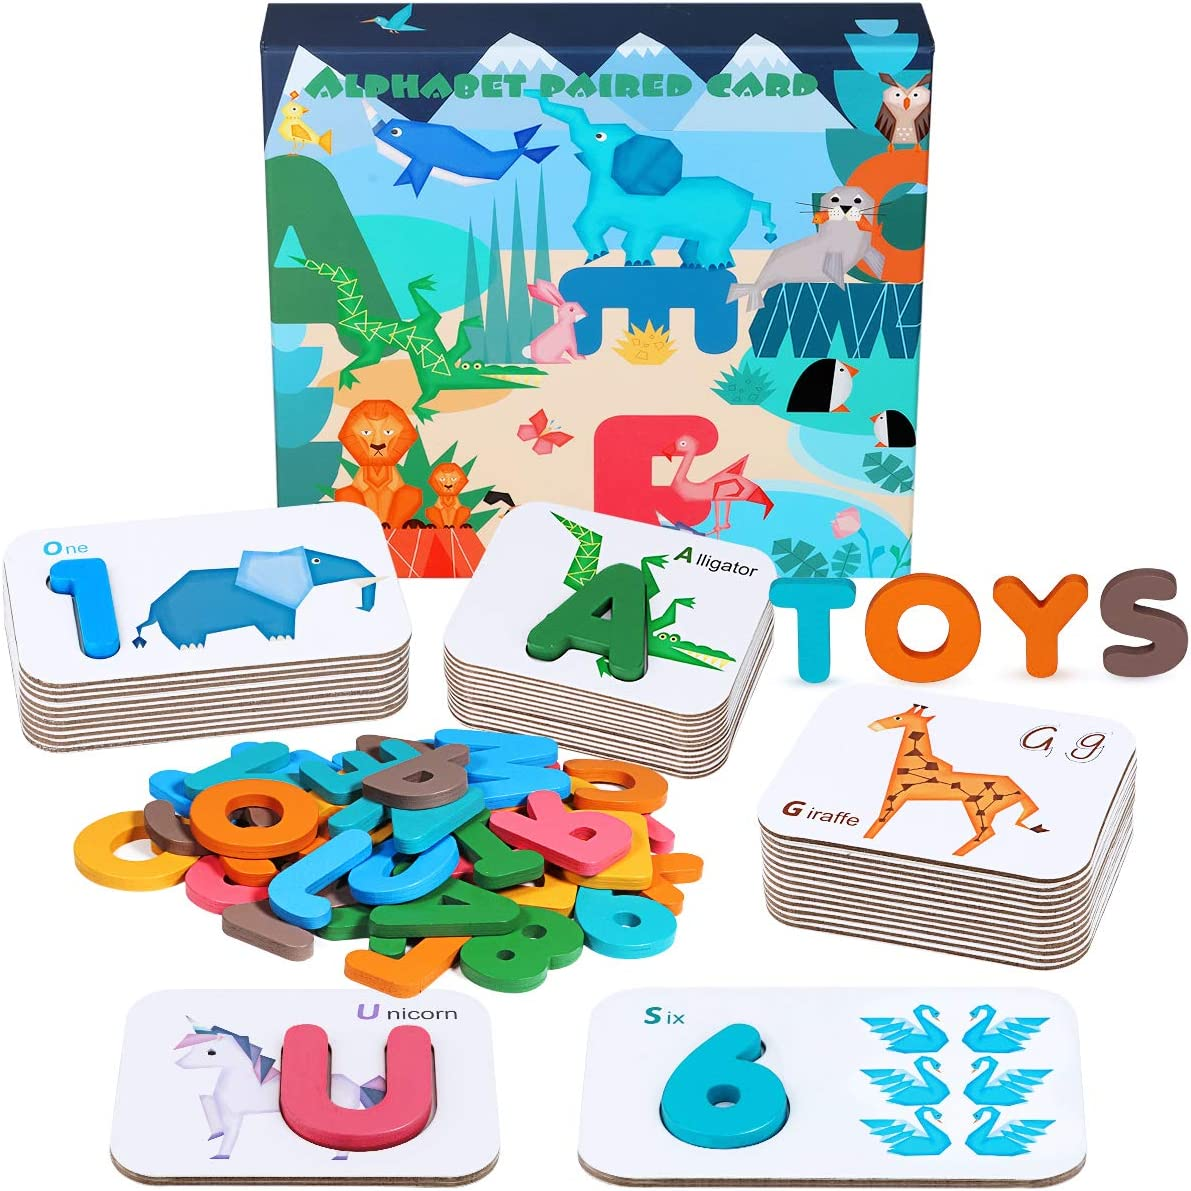 Apfity Alphabet Numbers Flash Cards Regular store ABC for Ranking TOP18 3-6 Years Toddlers